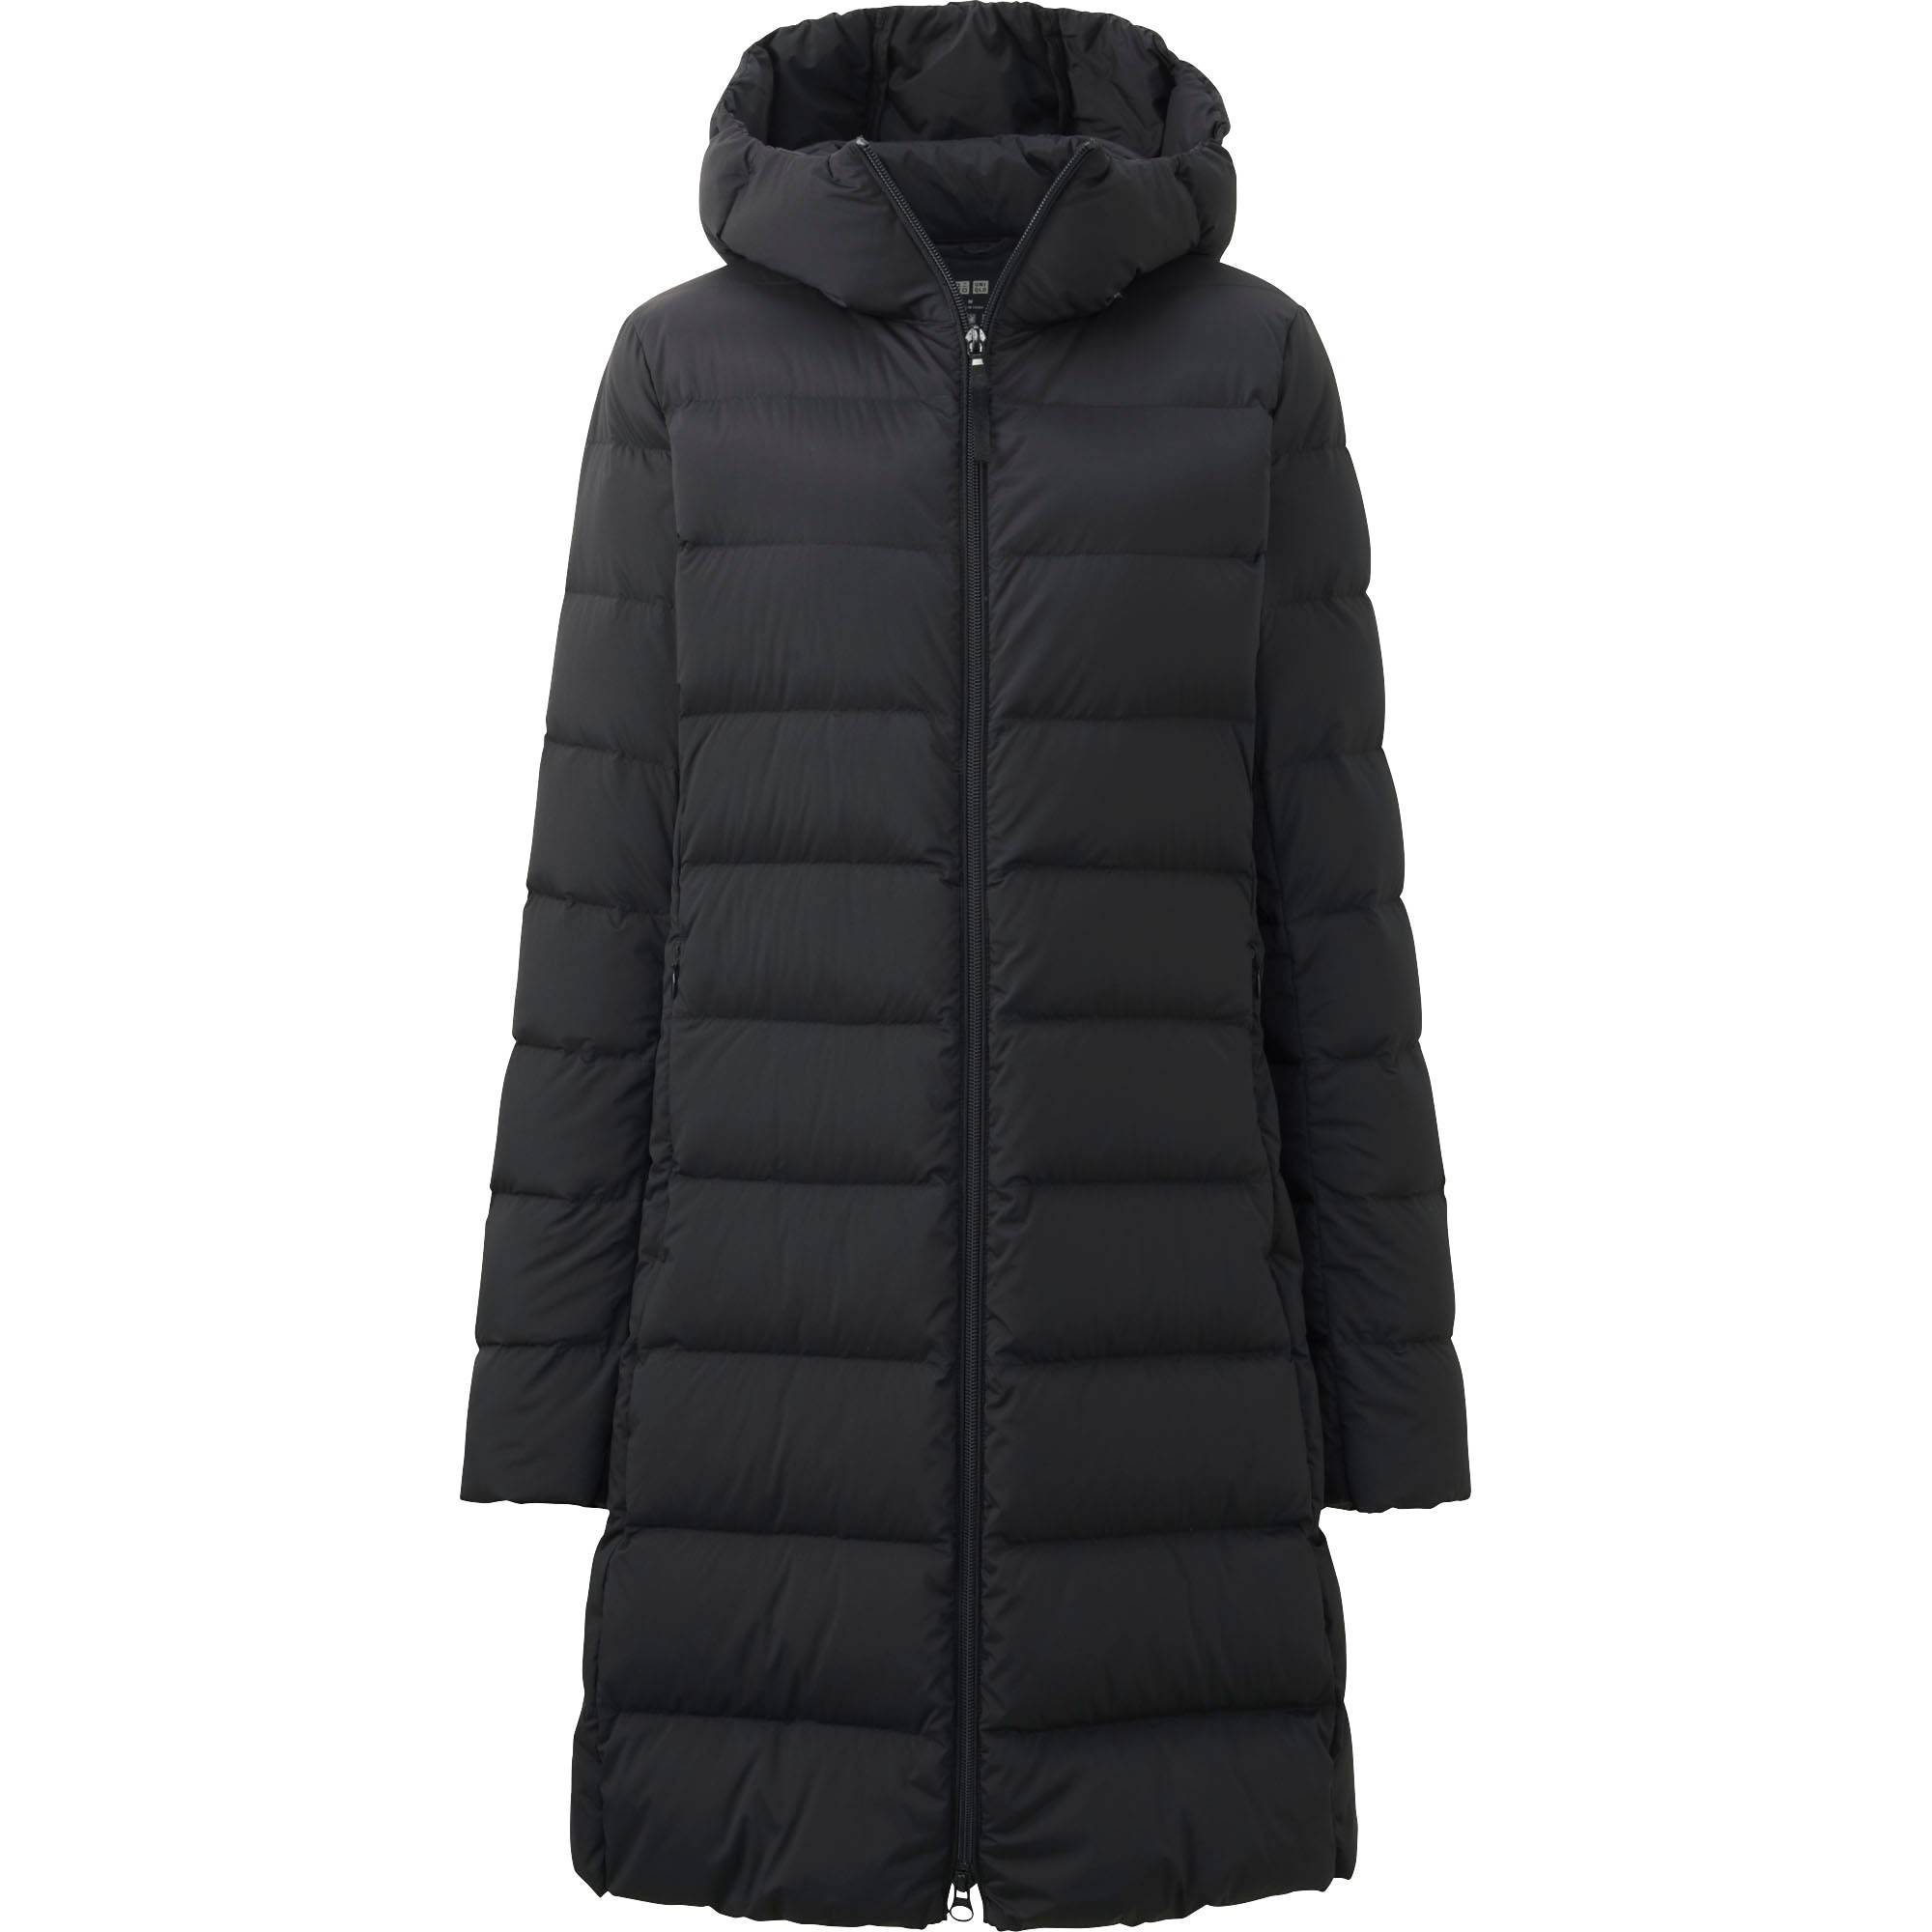 Uniqlo ultralight down coat